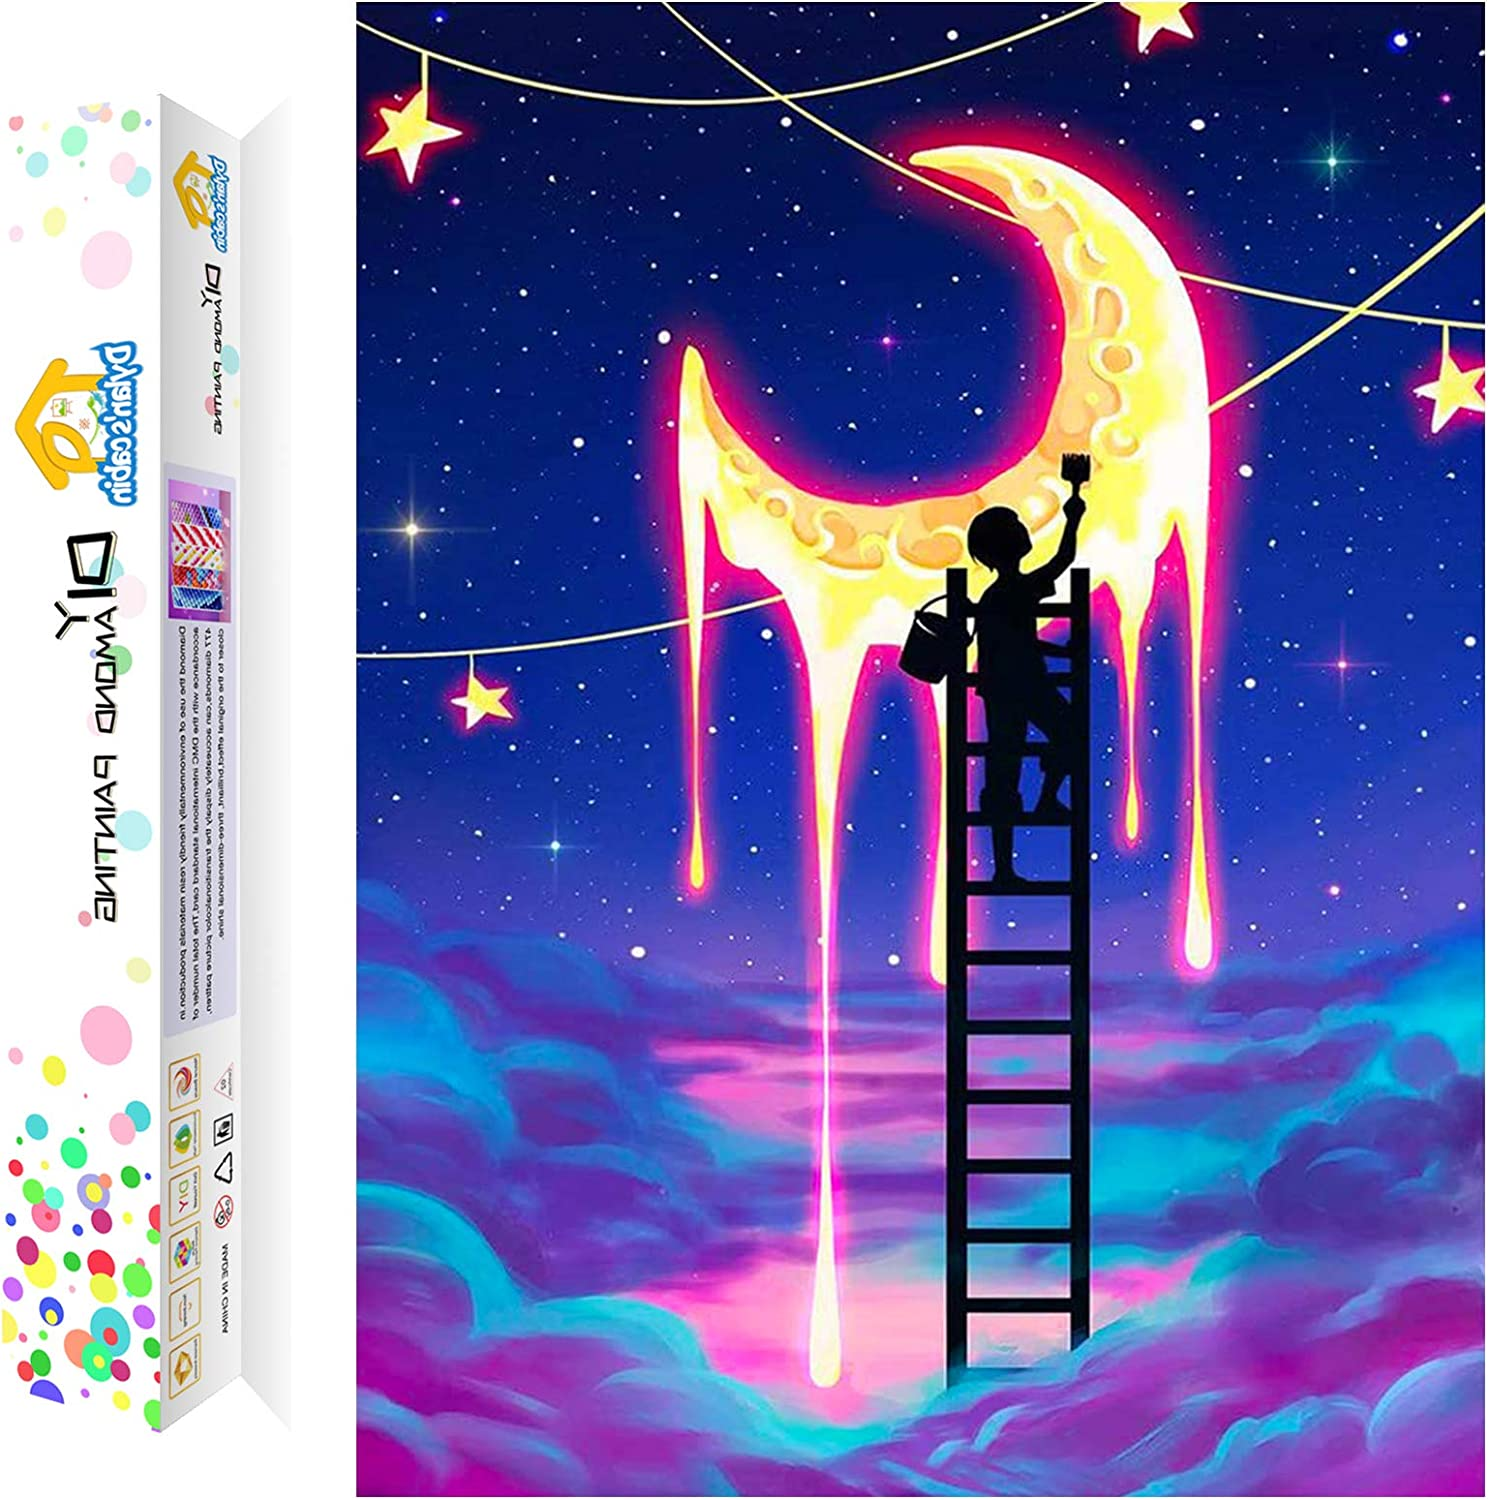 Crystal DIY 5D Diamond Painting Gift for Relaxation and Home Wall Decor Castle Offito Diamond Painting Kits for Adults Kids 12x16 inch Full Drill Diamond Art Kits for Beginners